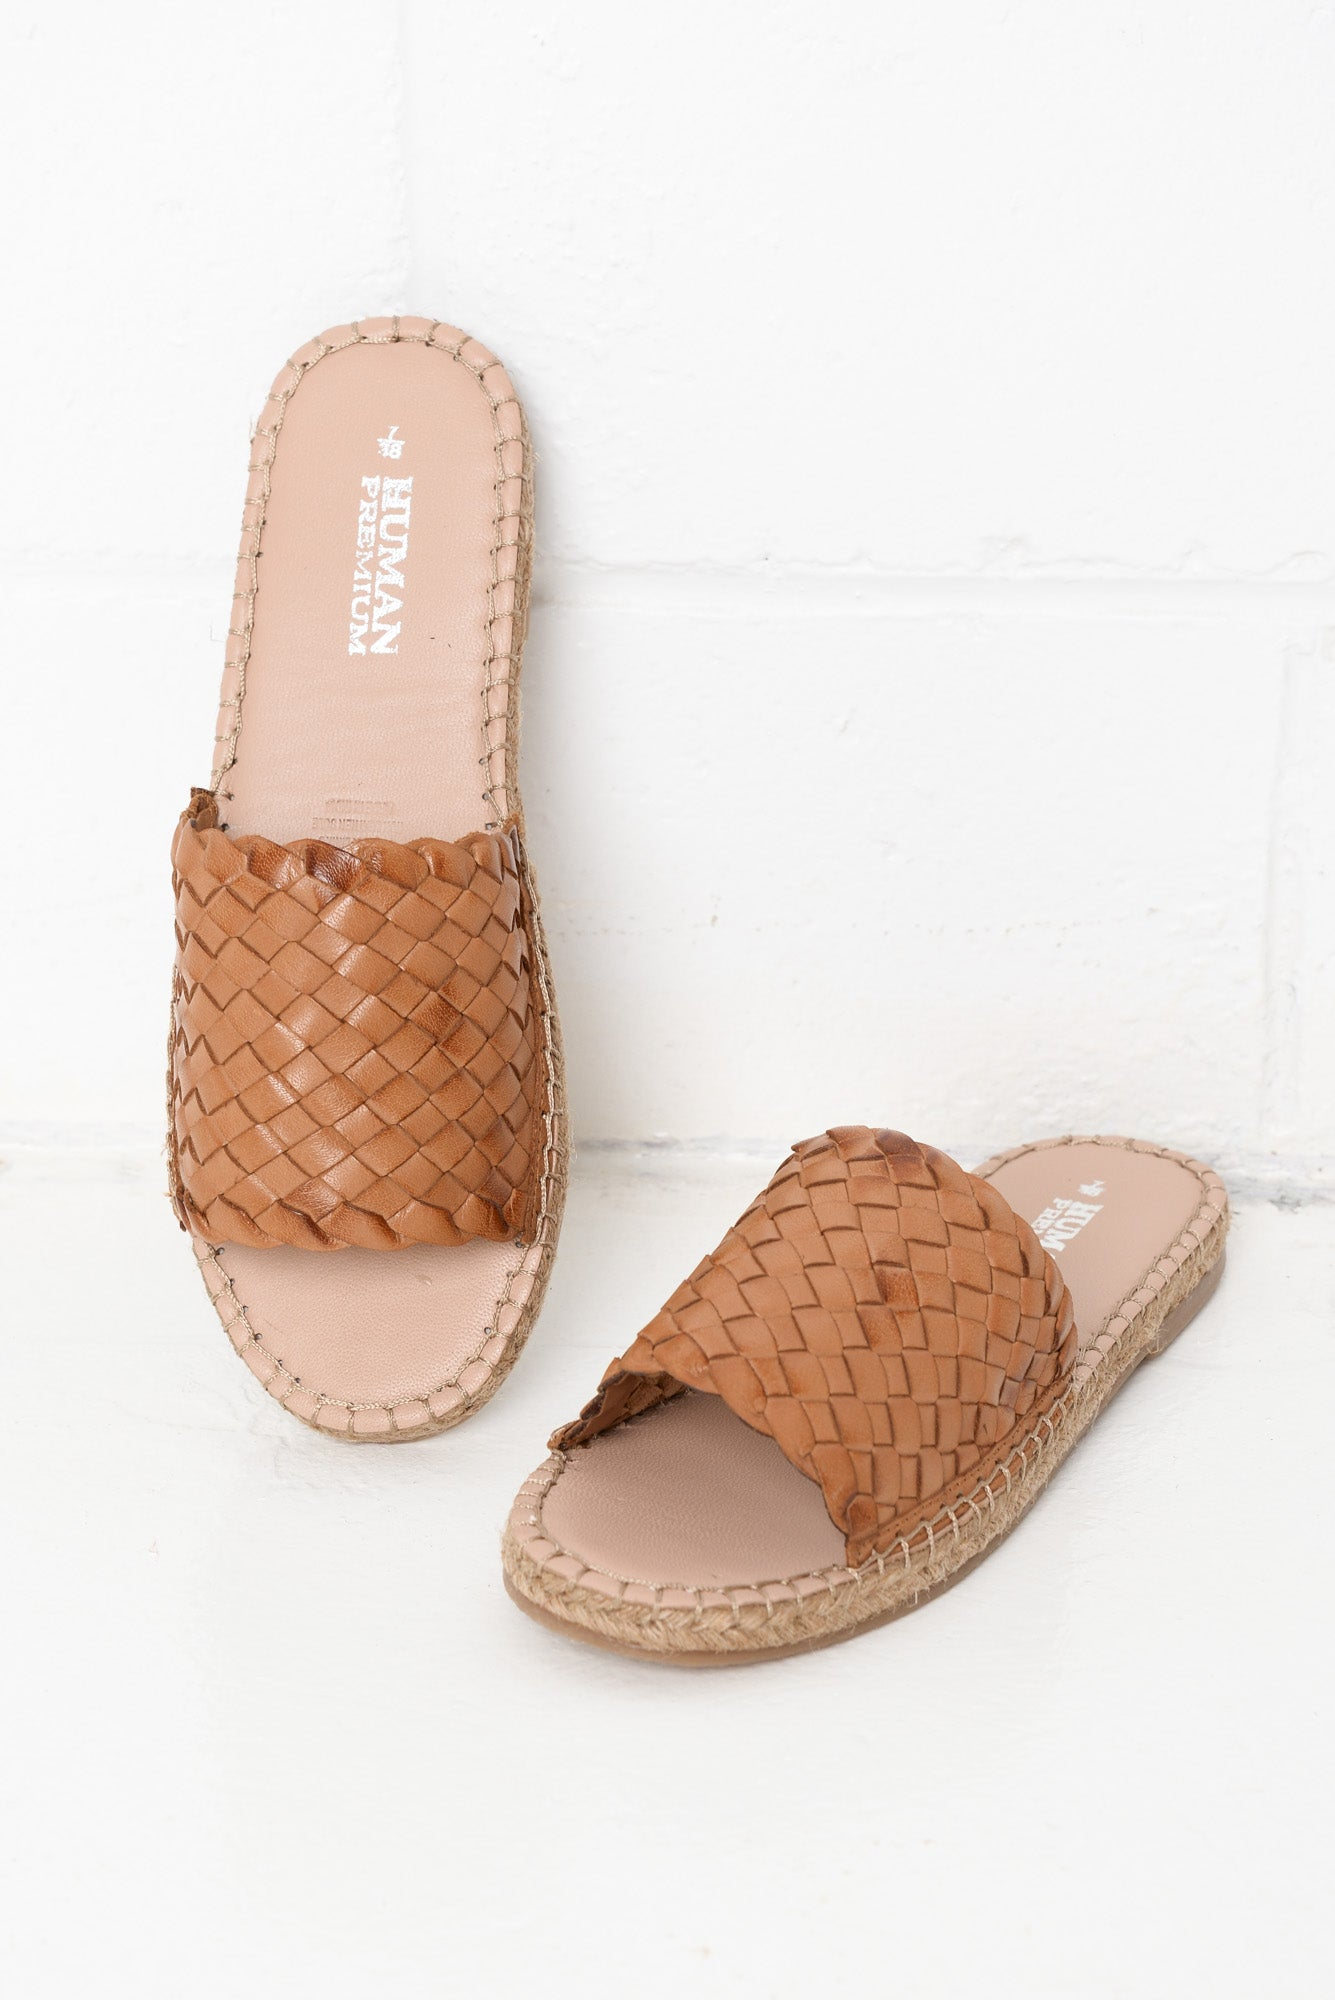 Chrissy Tan Woven Leather Slide